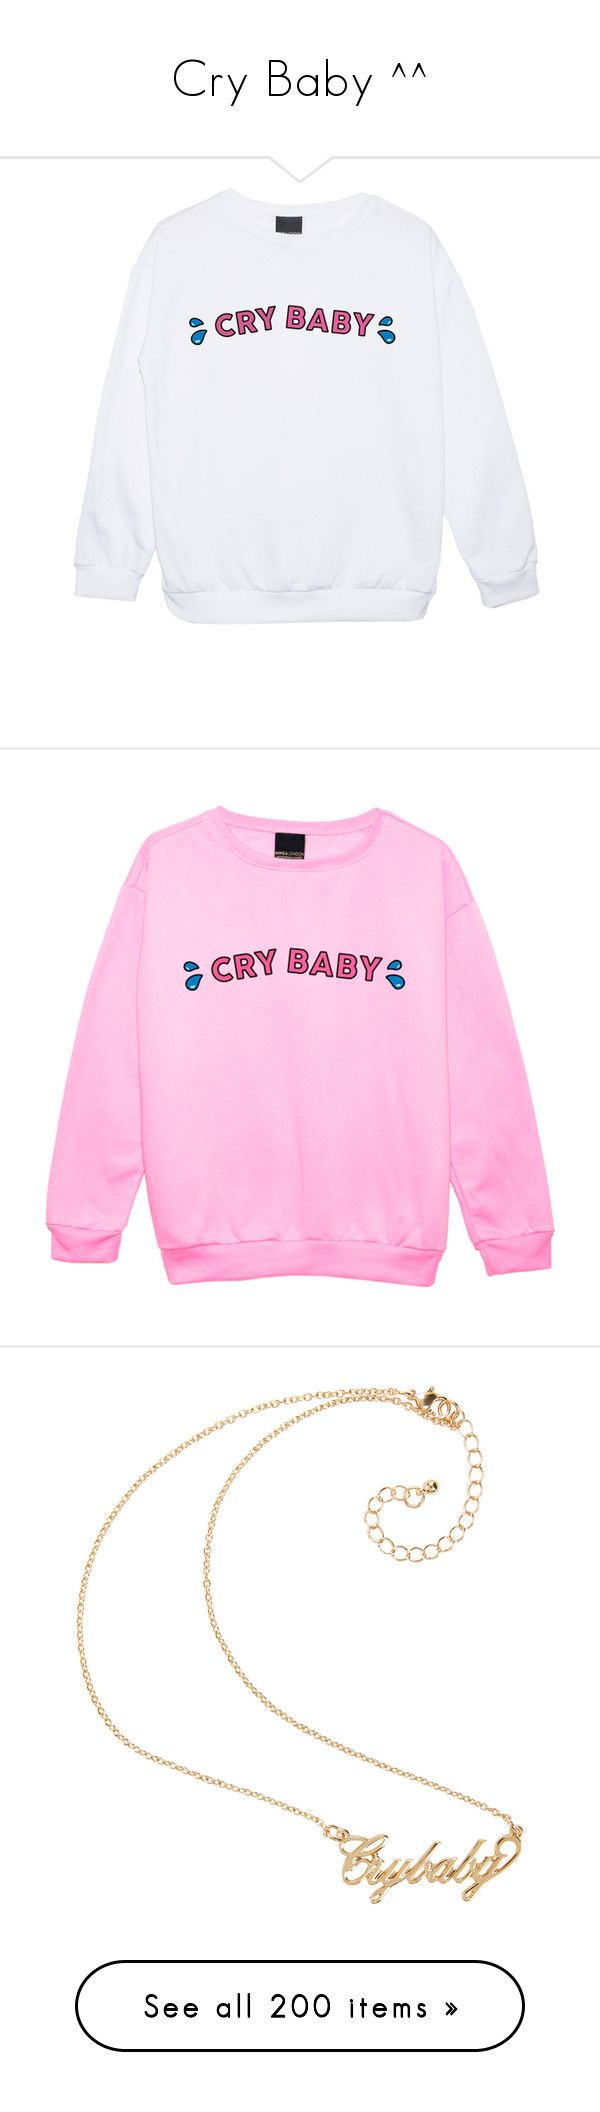 """""""Cry Baby ^^"""" by gabilovegood ❤ liked on Polyvore featuring tops, jumper, sweaters, sweatshirt, hoodies, sweatshirts, shirts, black, women's clothing and shirt top"""